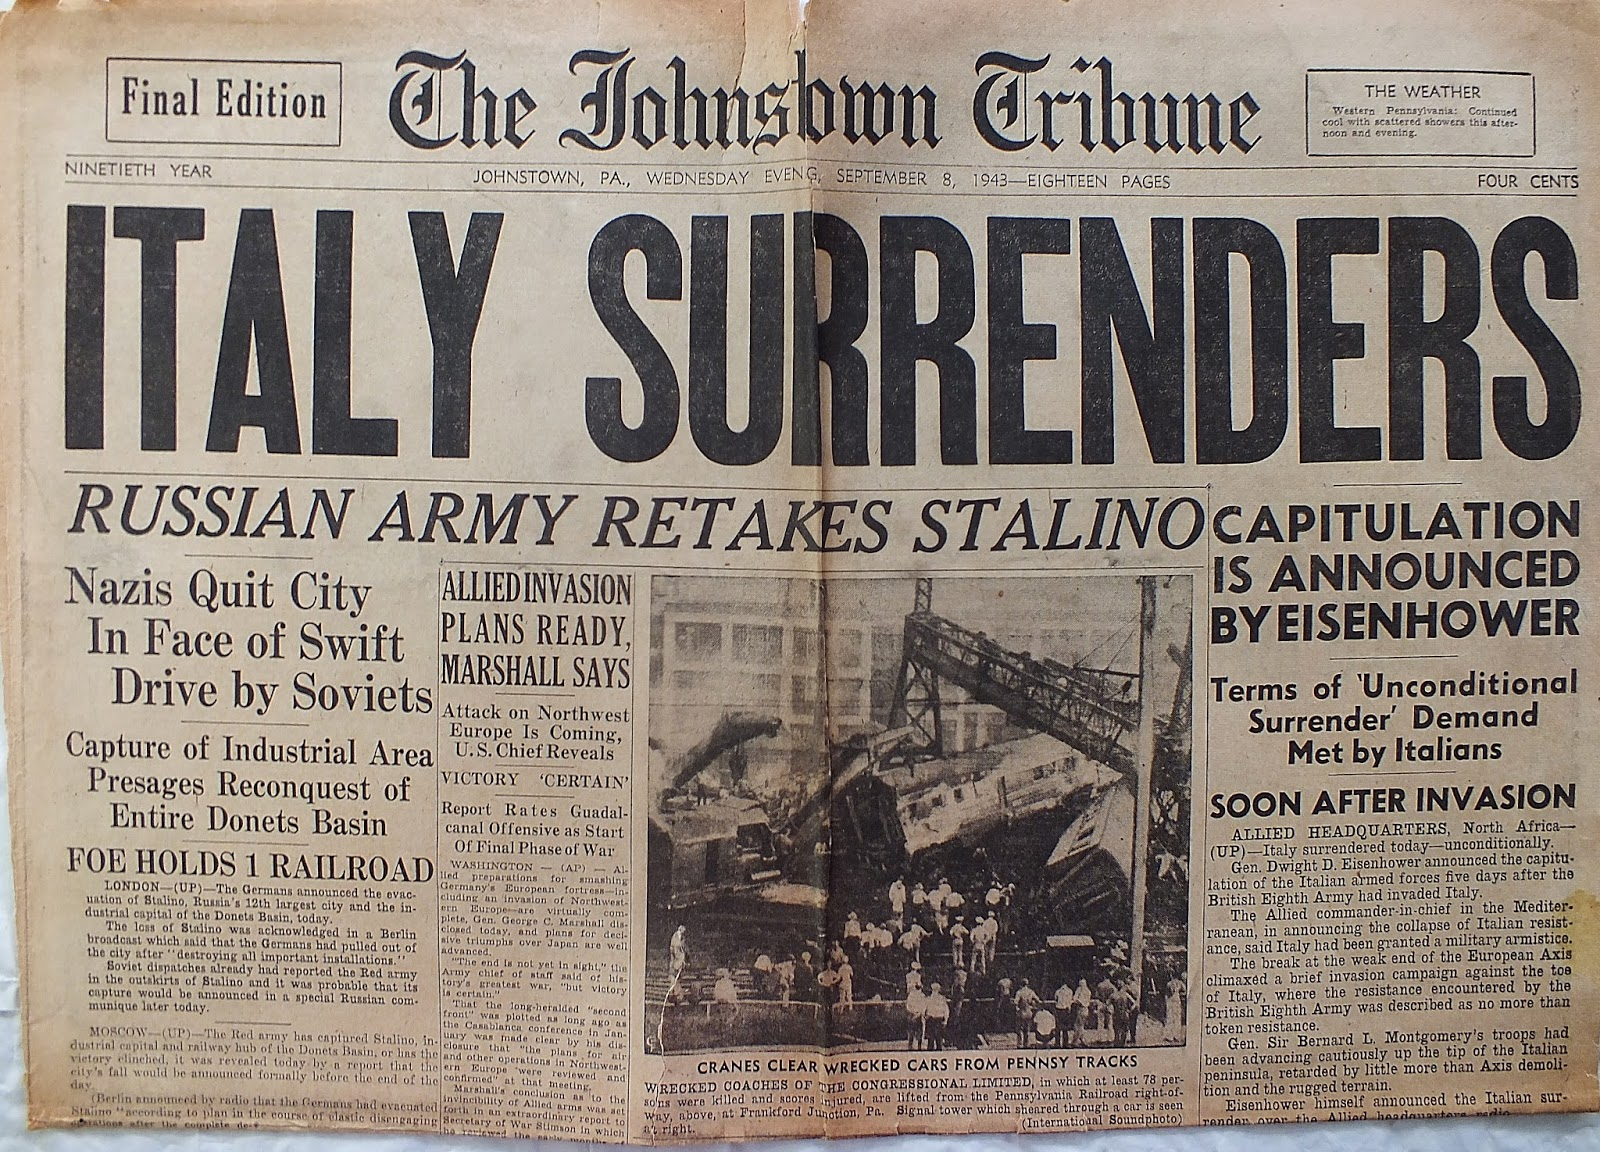 This Day In History: General Dwight D. Eisenhower Announces Italy's Surrender To The Allies In World War II Featured